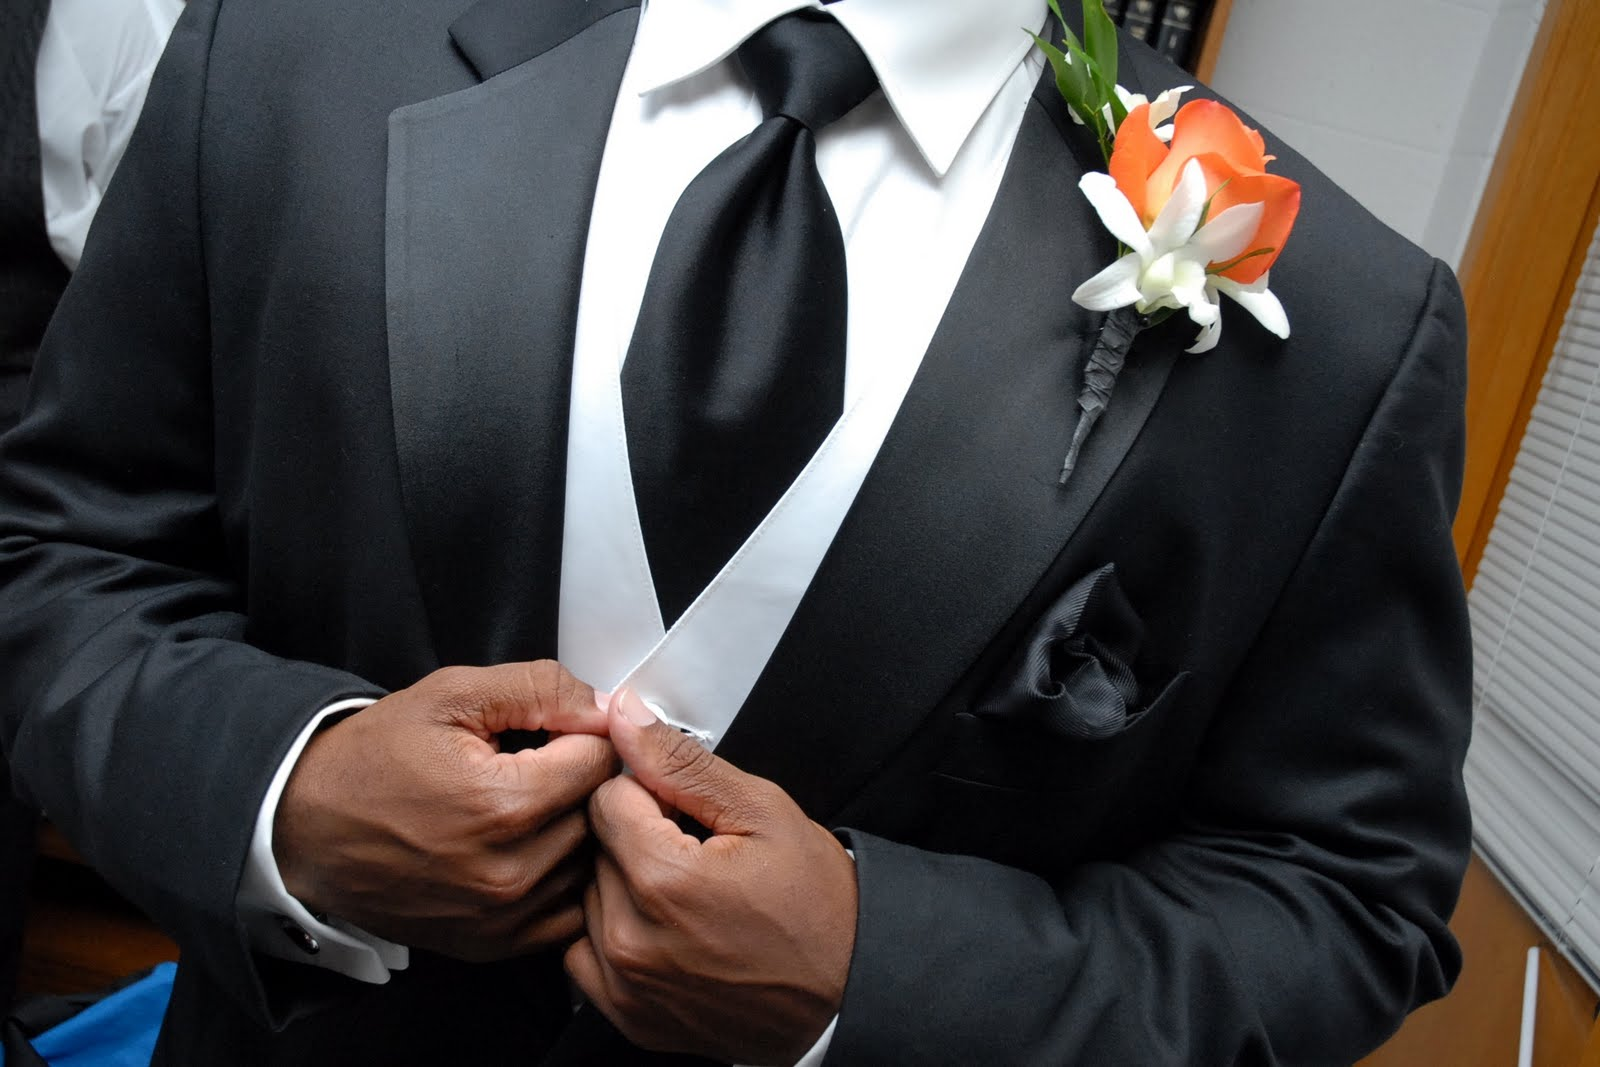 Pocket Square and boutonniere for groom and groomsmen at wedding